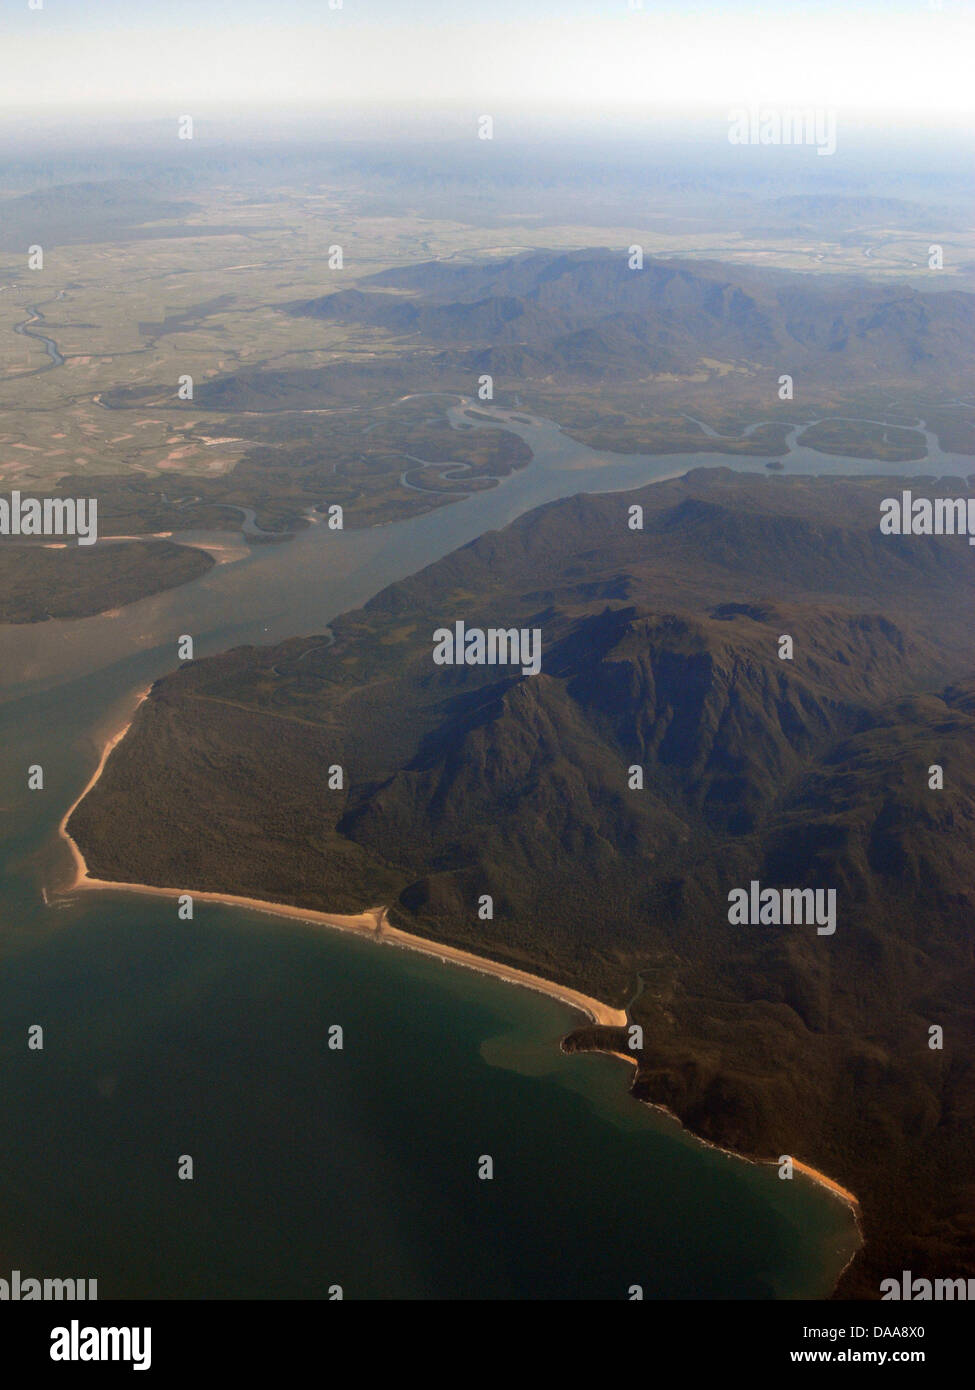 Aerial view of southern end of Hinchinbrook Channel, Hinchinbrook Island National Park, Queensland, Australia - Stock Image